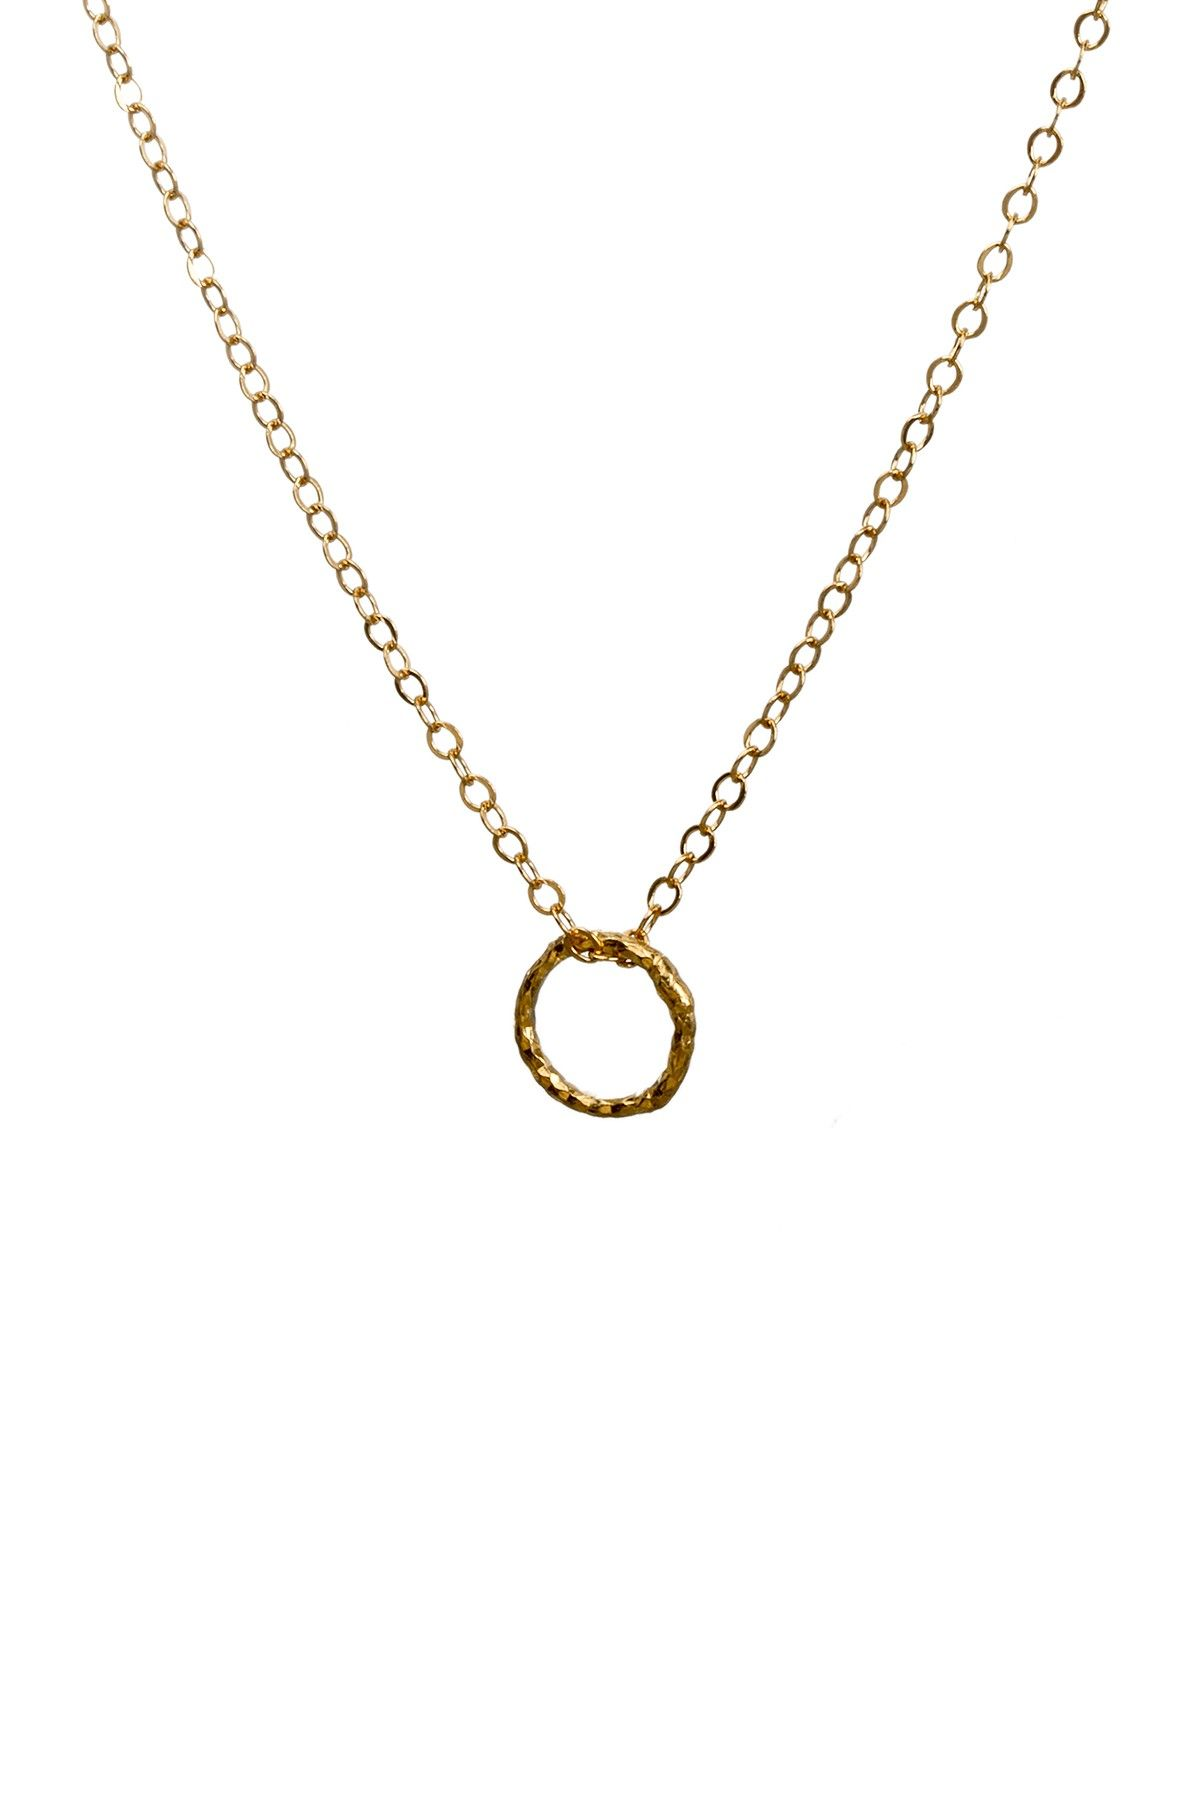 K yellow gold plated sterling silver karma textured ring pendant